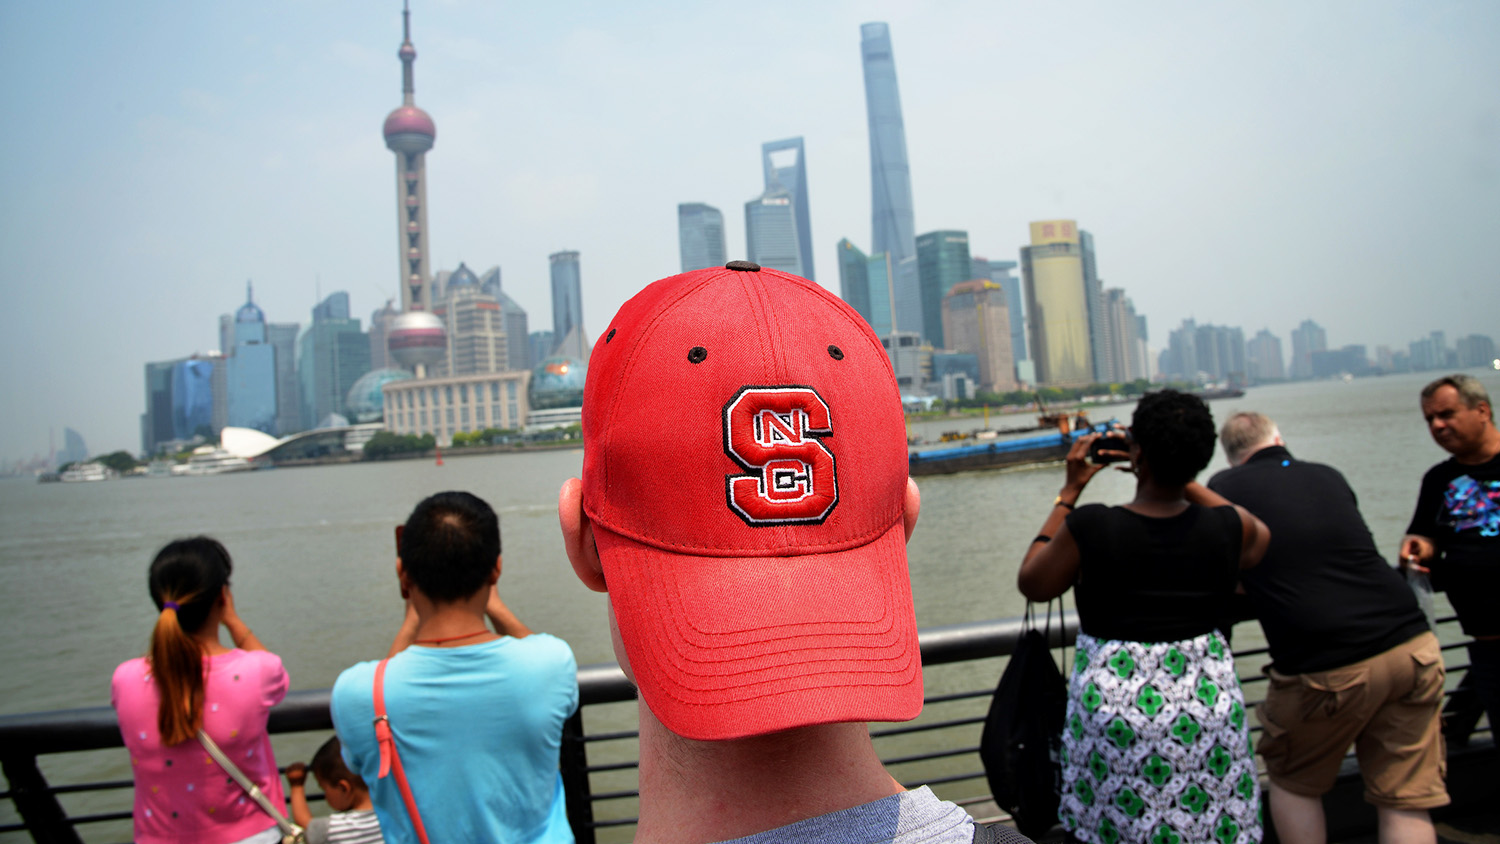 student with NCState hat looks at buildings in Shanghai